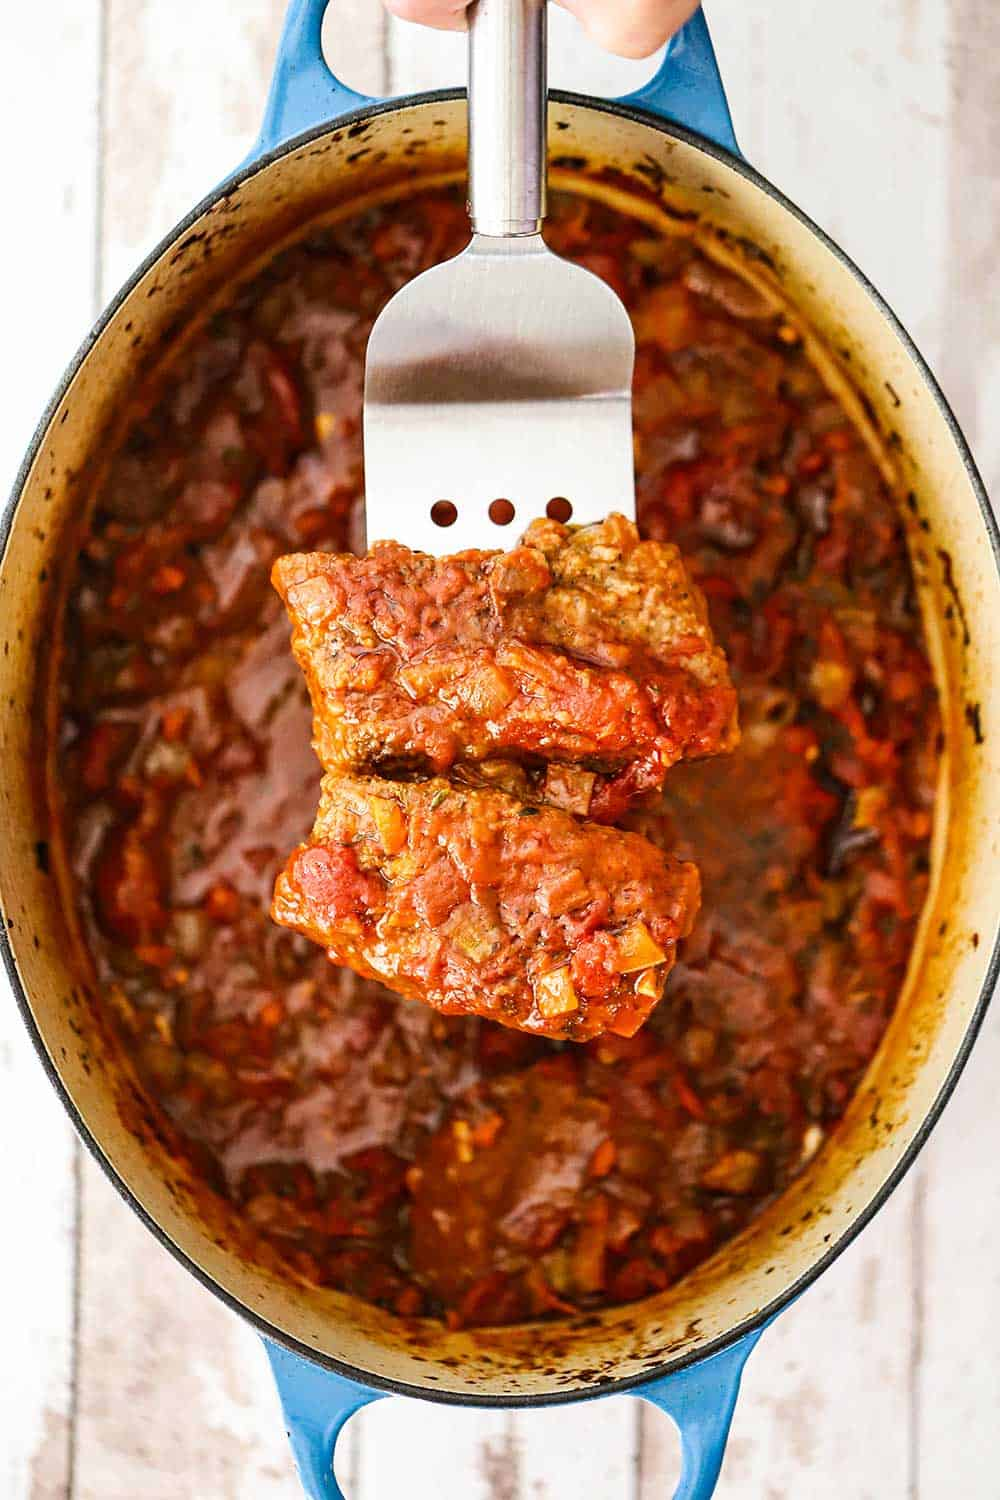 A metal spatula holding up two steak fillets covered in a red tomato sauce directly over an oval Dutch oven filled with Swiss steak.